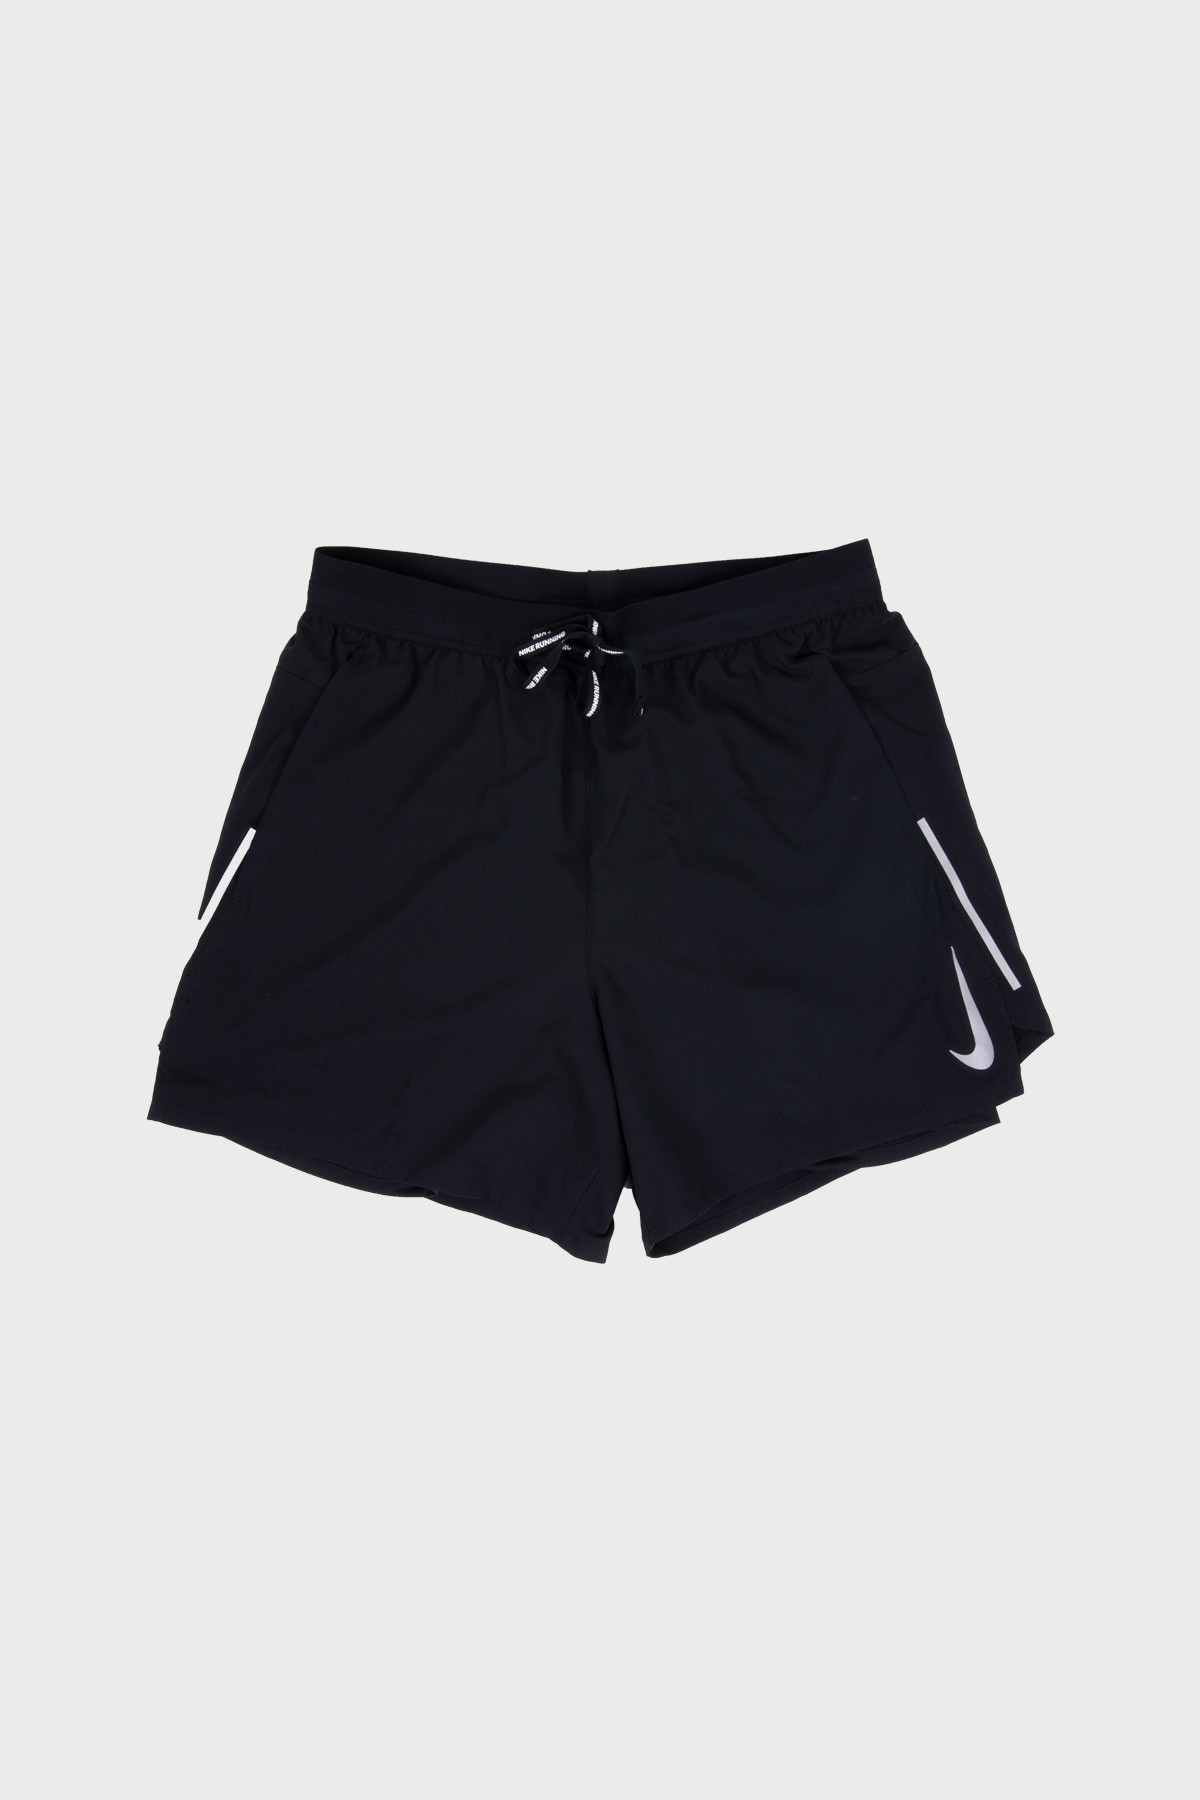 "Nike - Men's 5"" 2-in-1 Running Shorts Flex Stride - Black Black Metallic Silver"